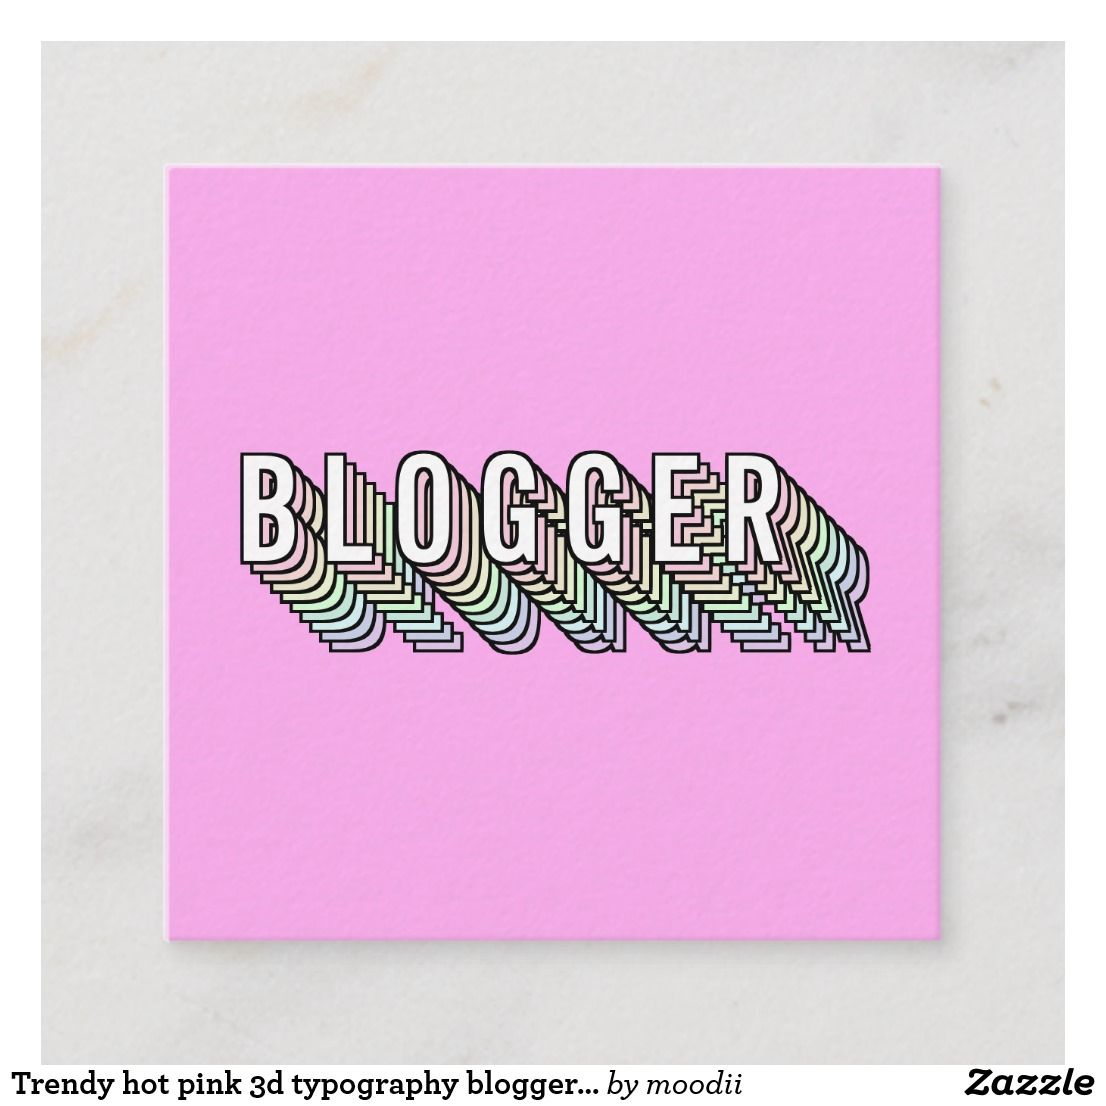 Trendy hot pink 3d typography blogger minimal square business card | Zazzle.com #3dtypography